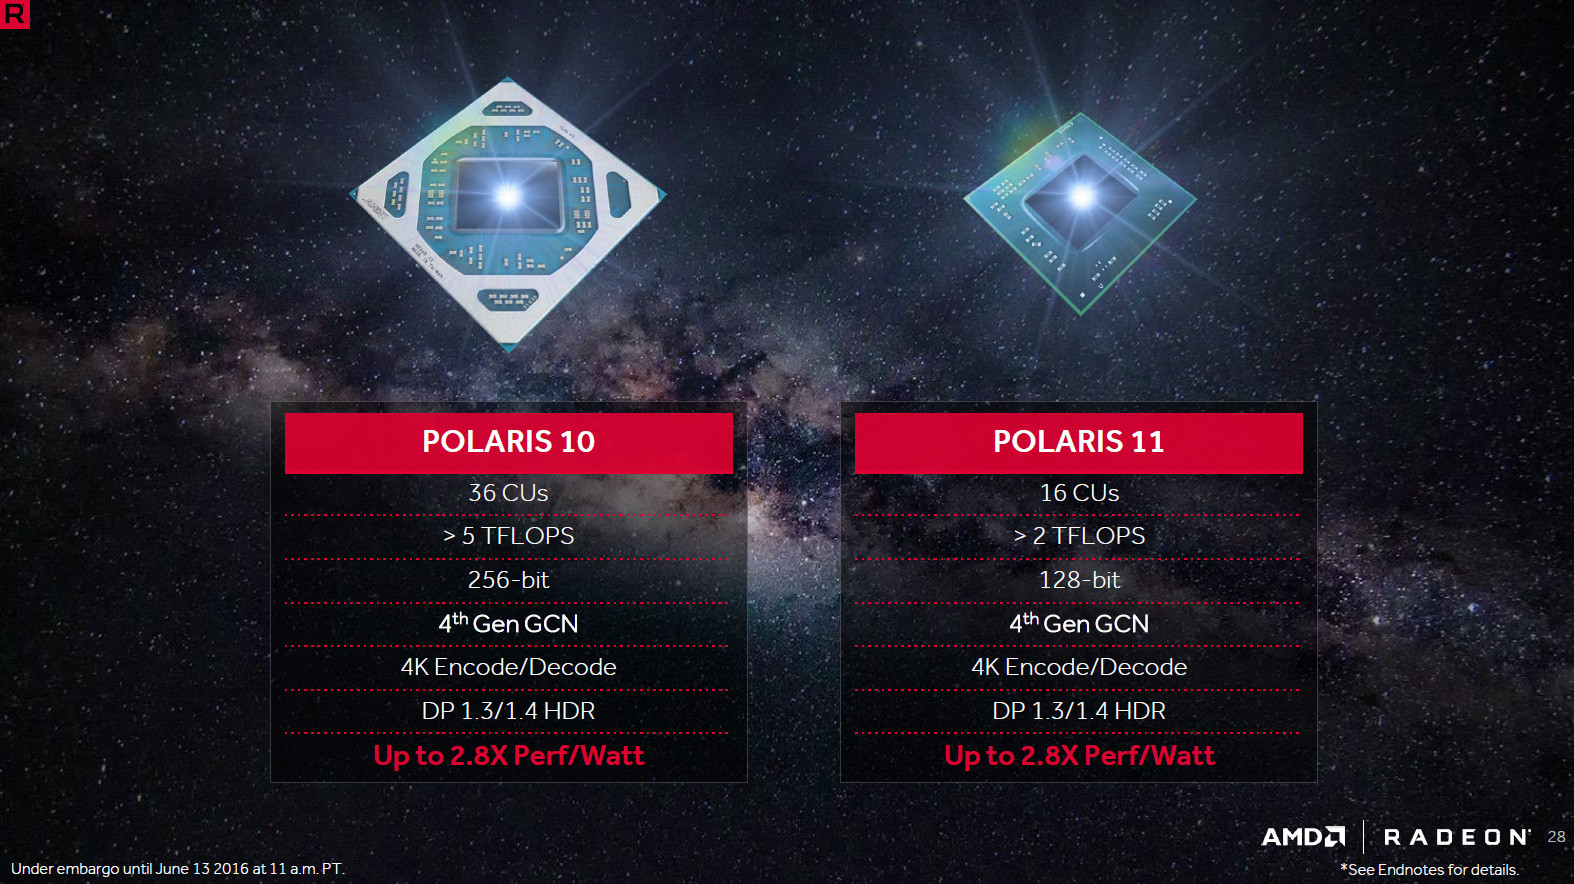 csm_AMD_Polaris_10_and_Polaris_11_Radeon_RX_480_RX_470_RX_460_GPUs_3_4019e6c0d2